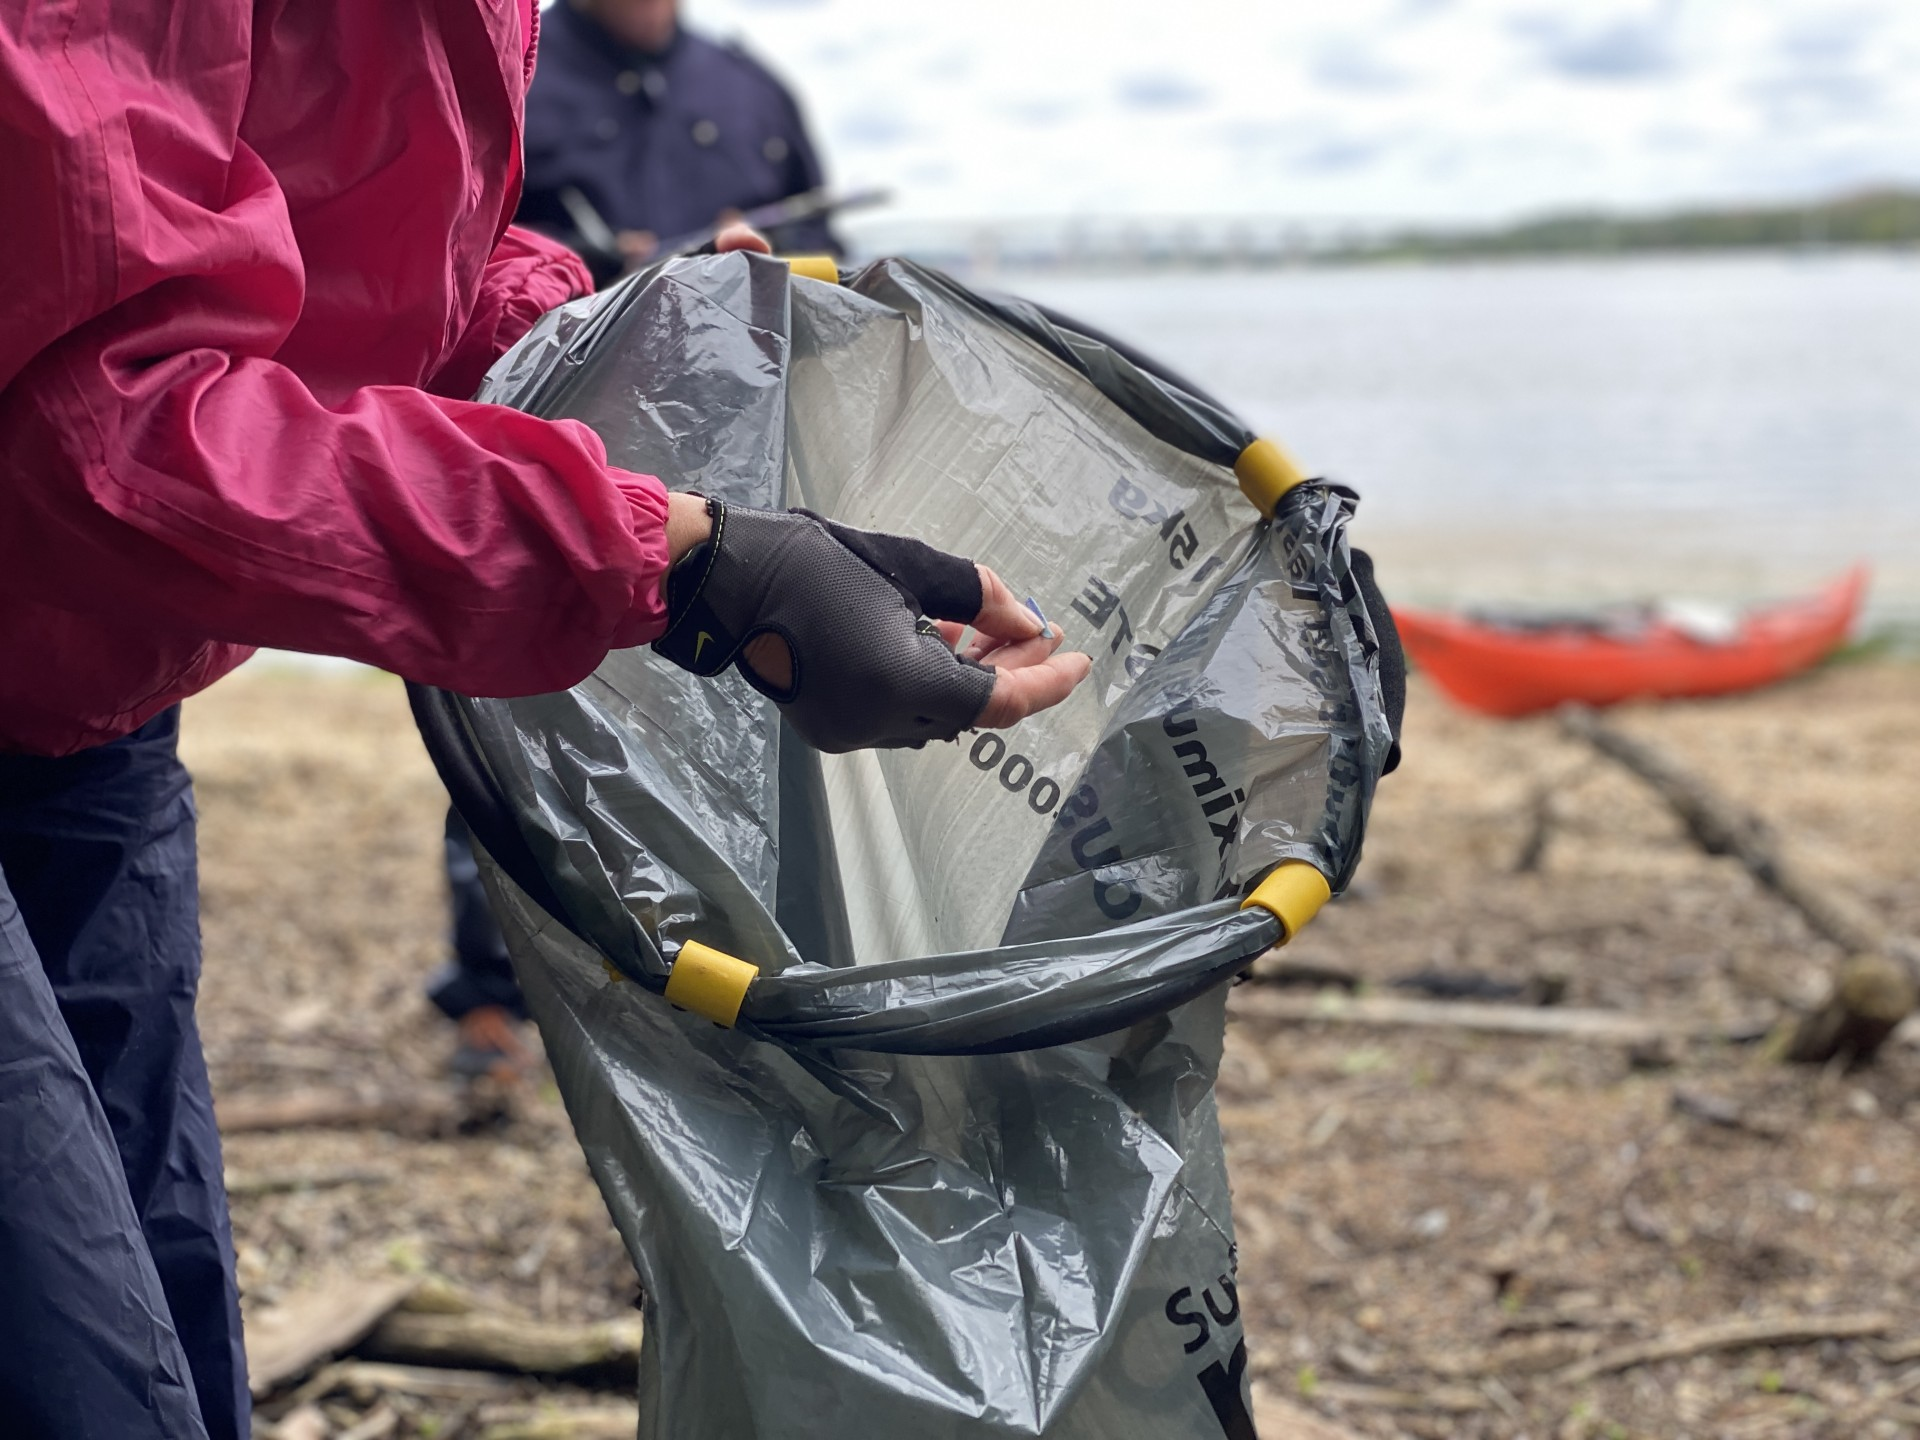 A black bin bag being filled with rubbish collected from a beach with kayaks in the background.